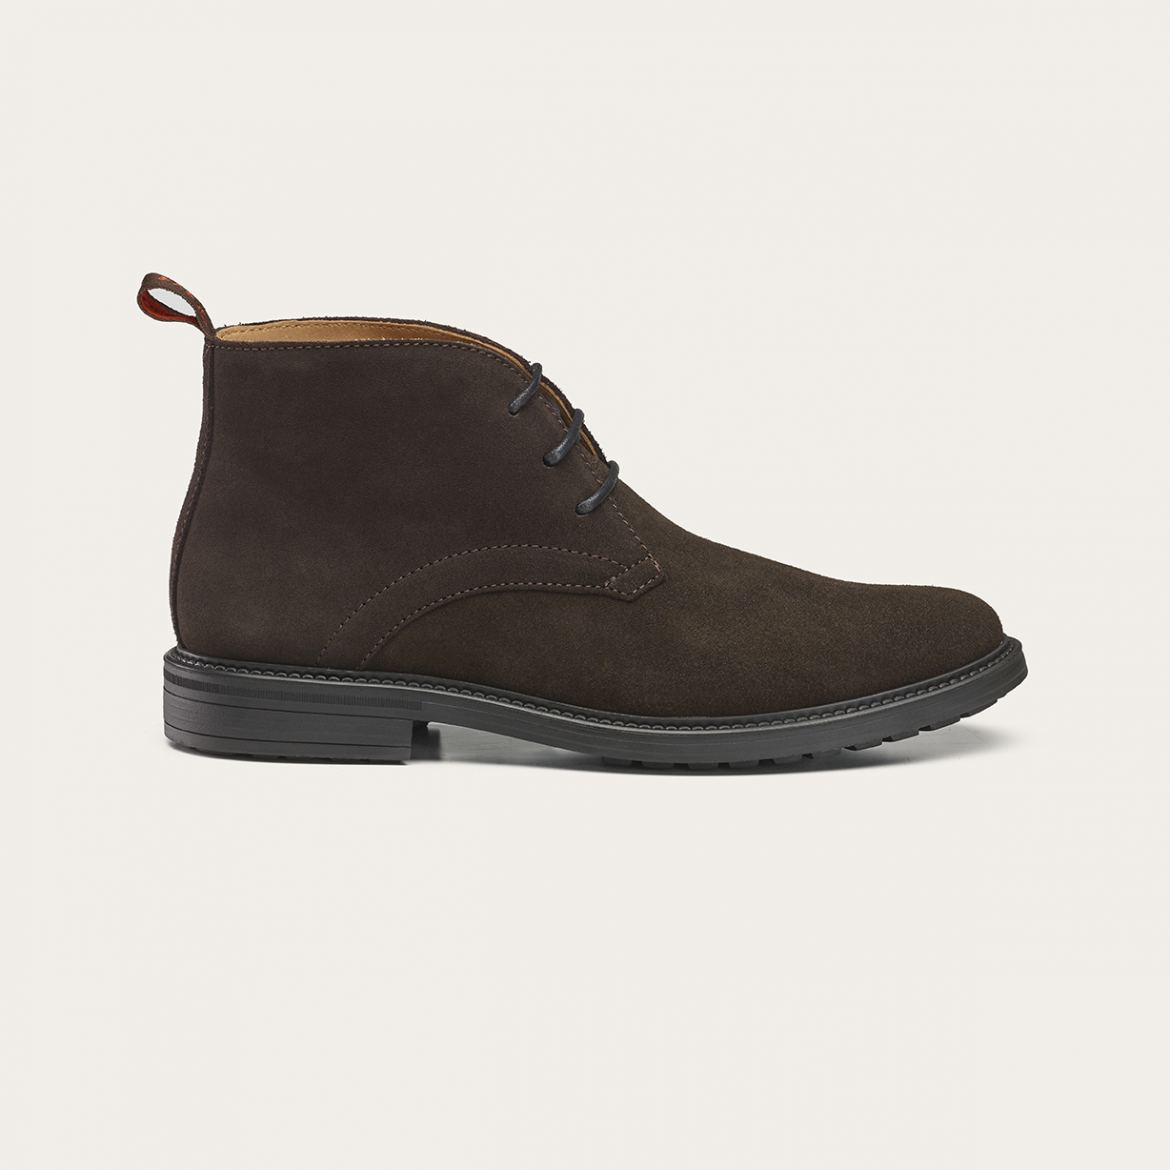 Greve Veterboot Barbour Dark Brown Velvet  5565.02